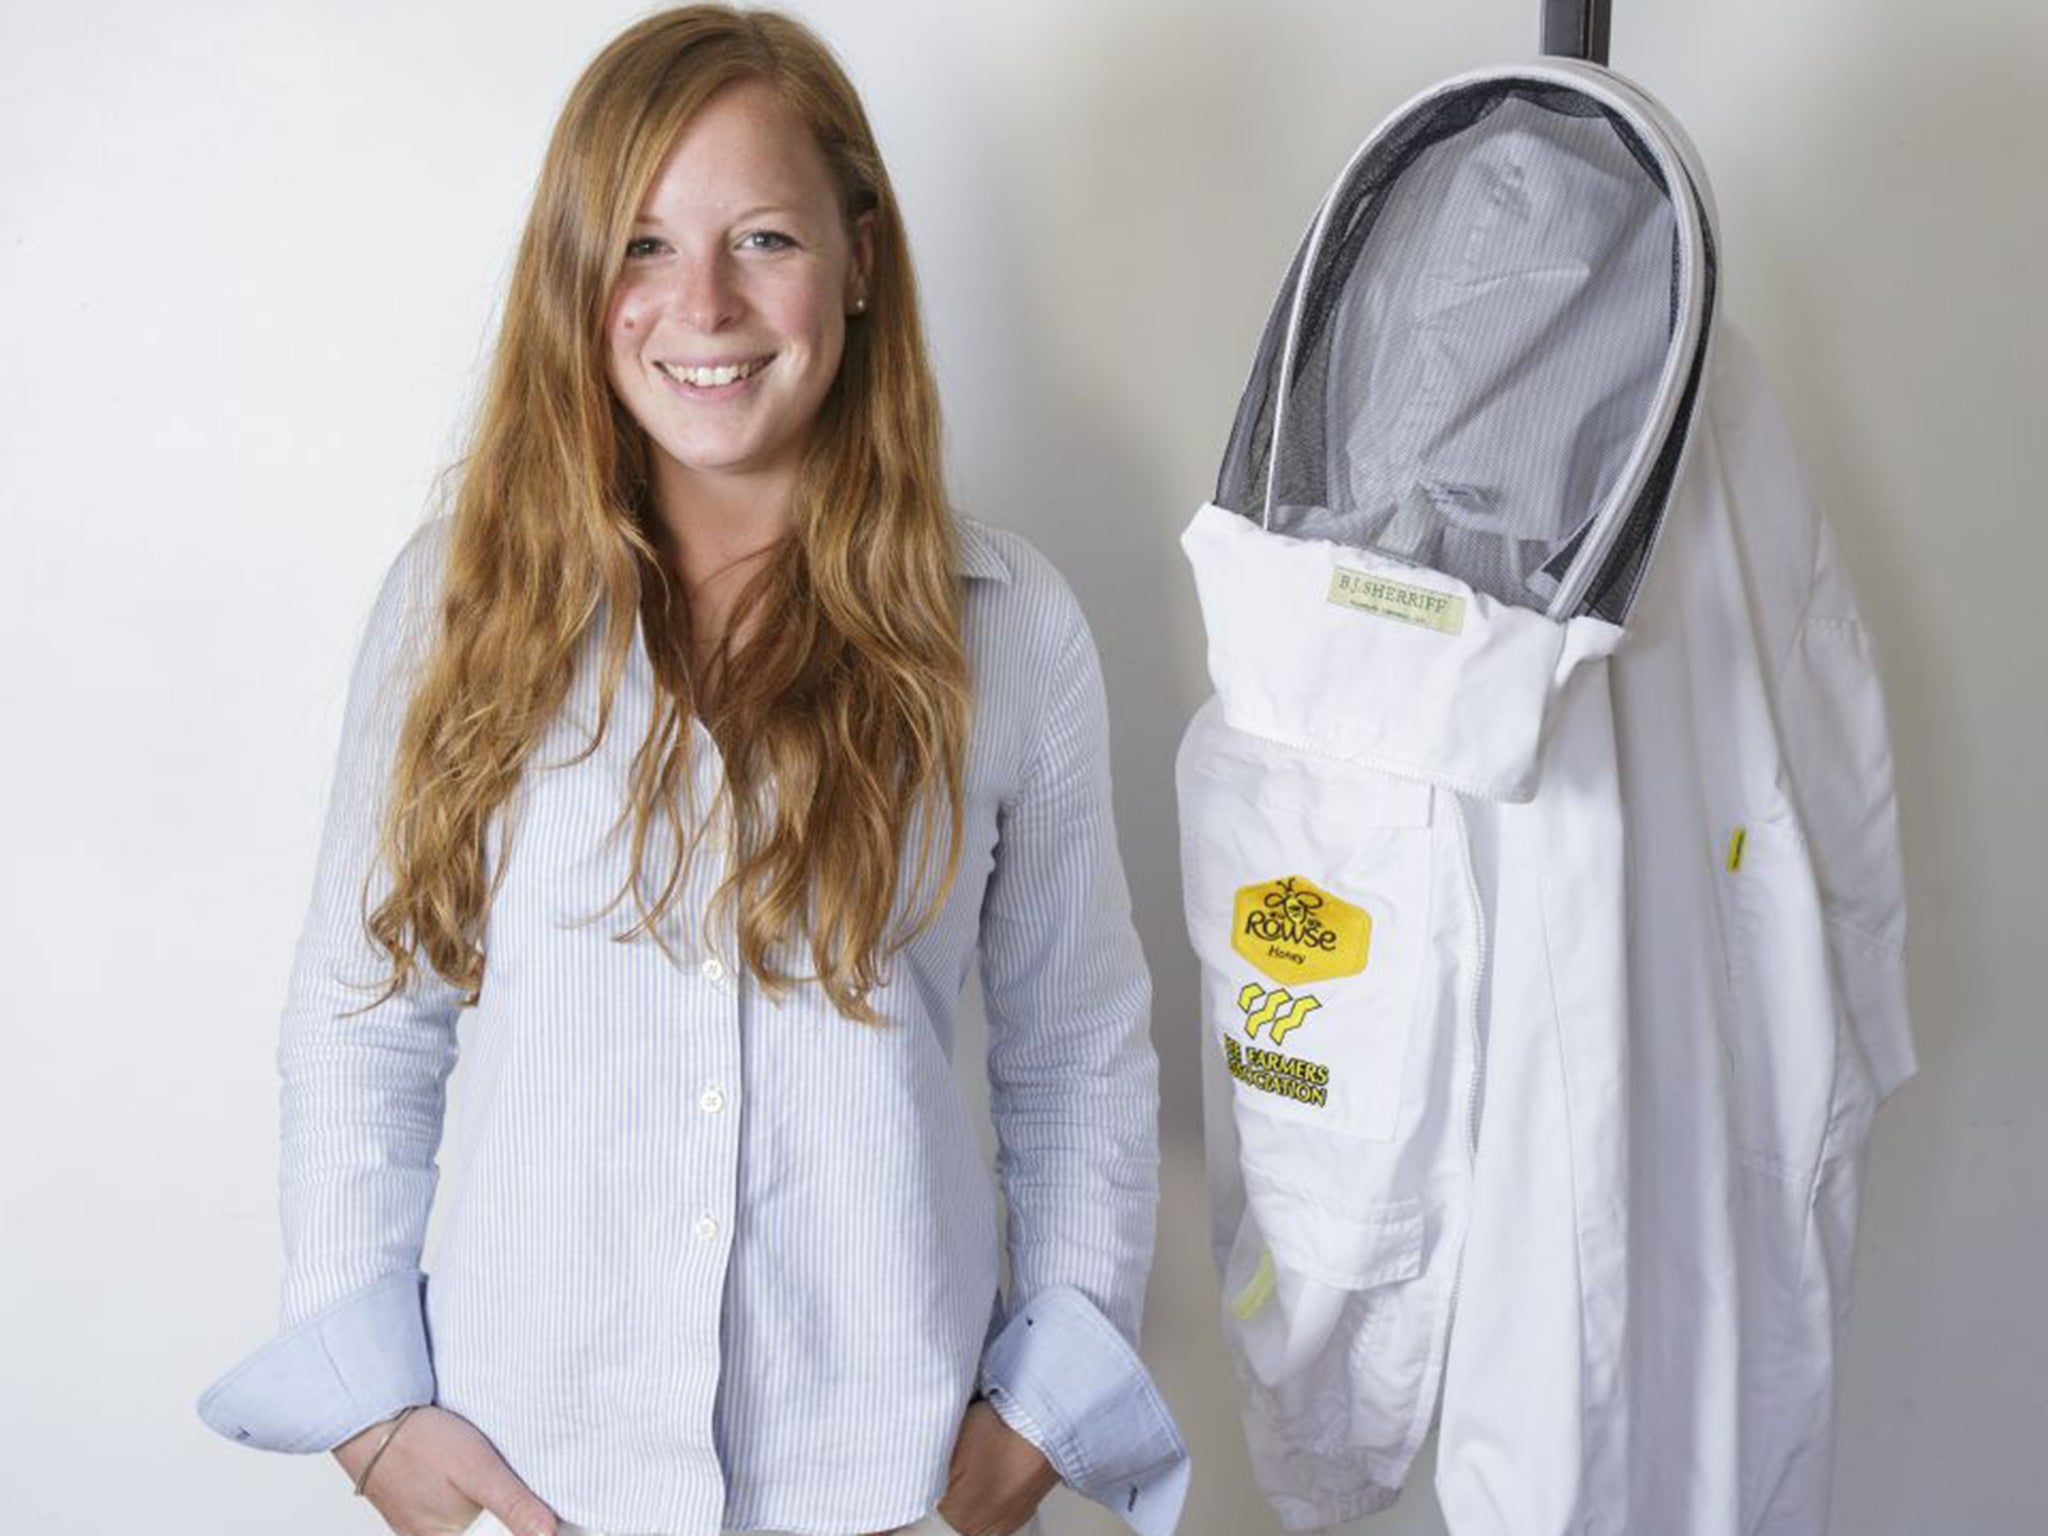 5109742c4 Rebecca Marshall: Meet the world's first apprentice bee farmer | The ...